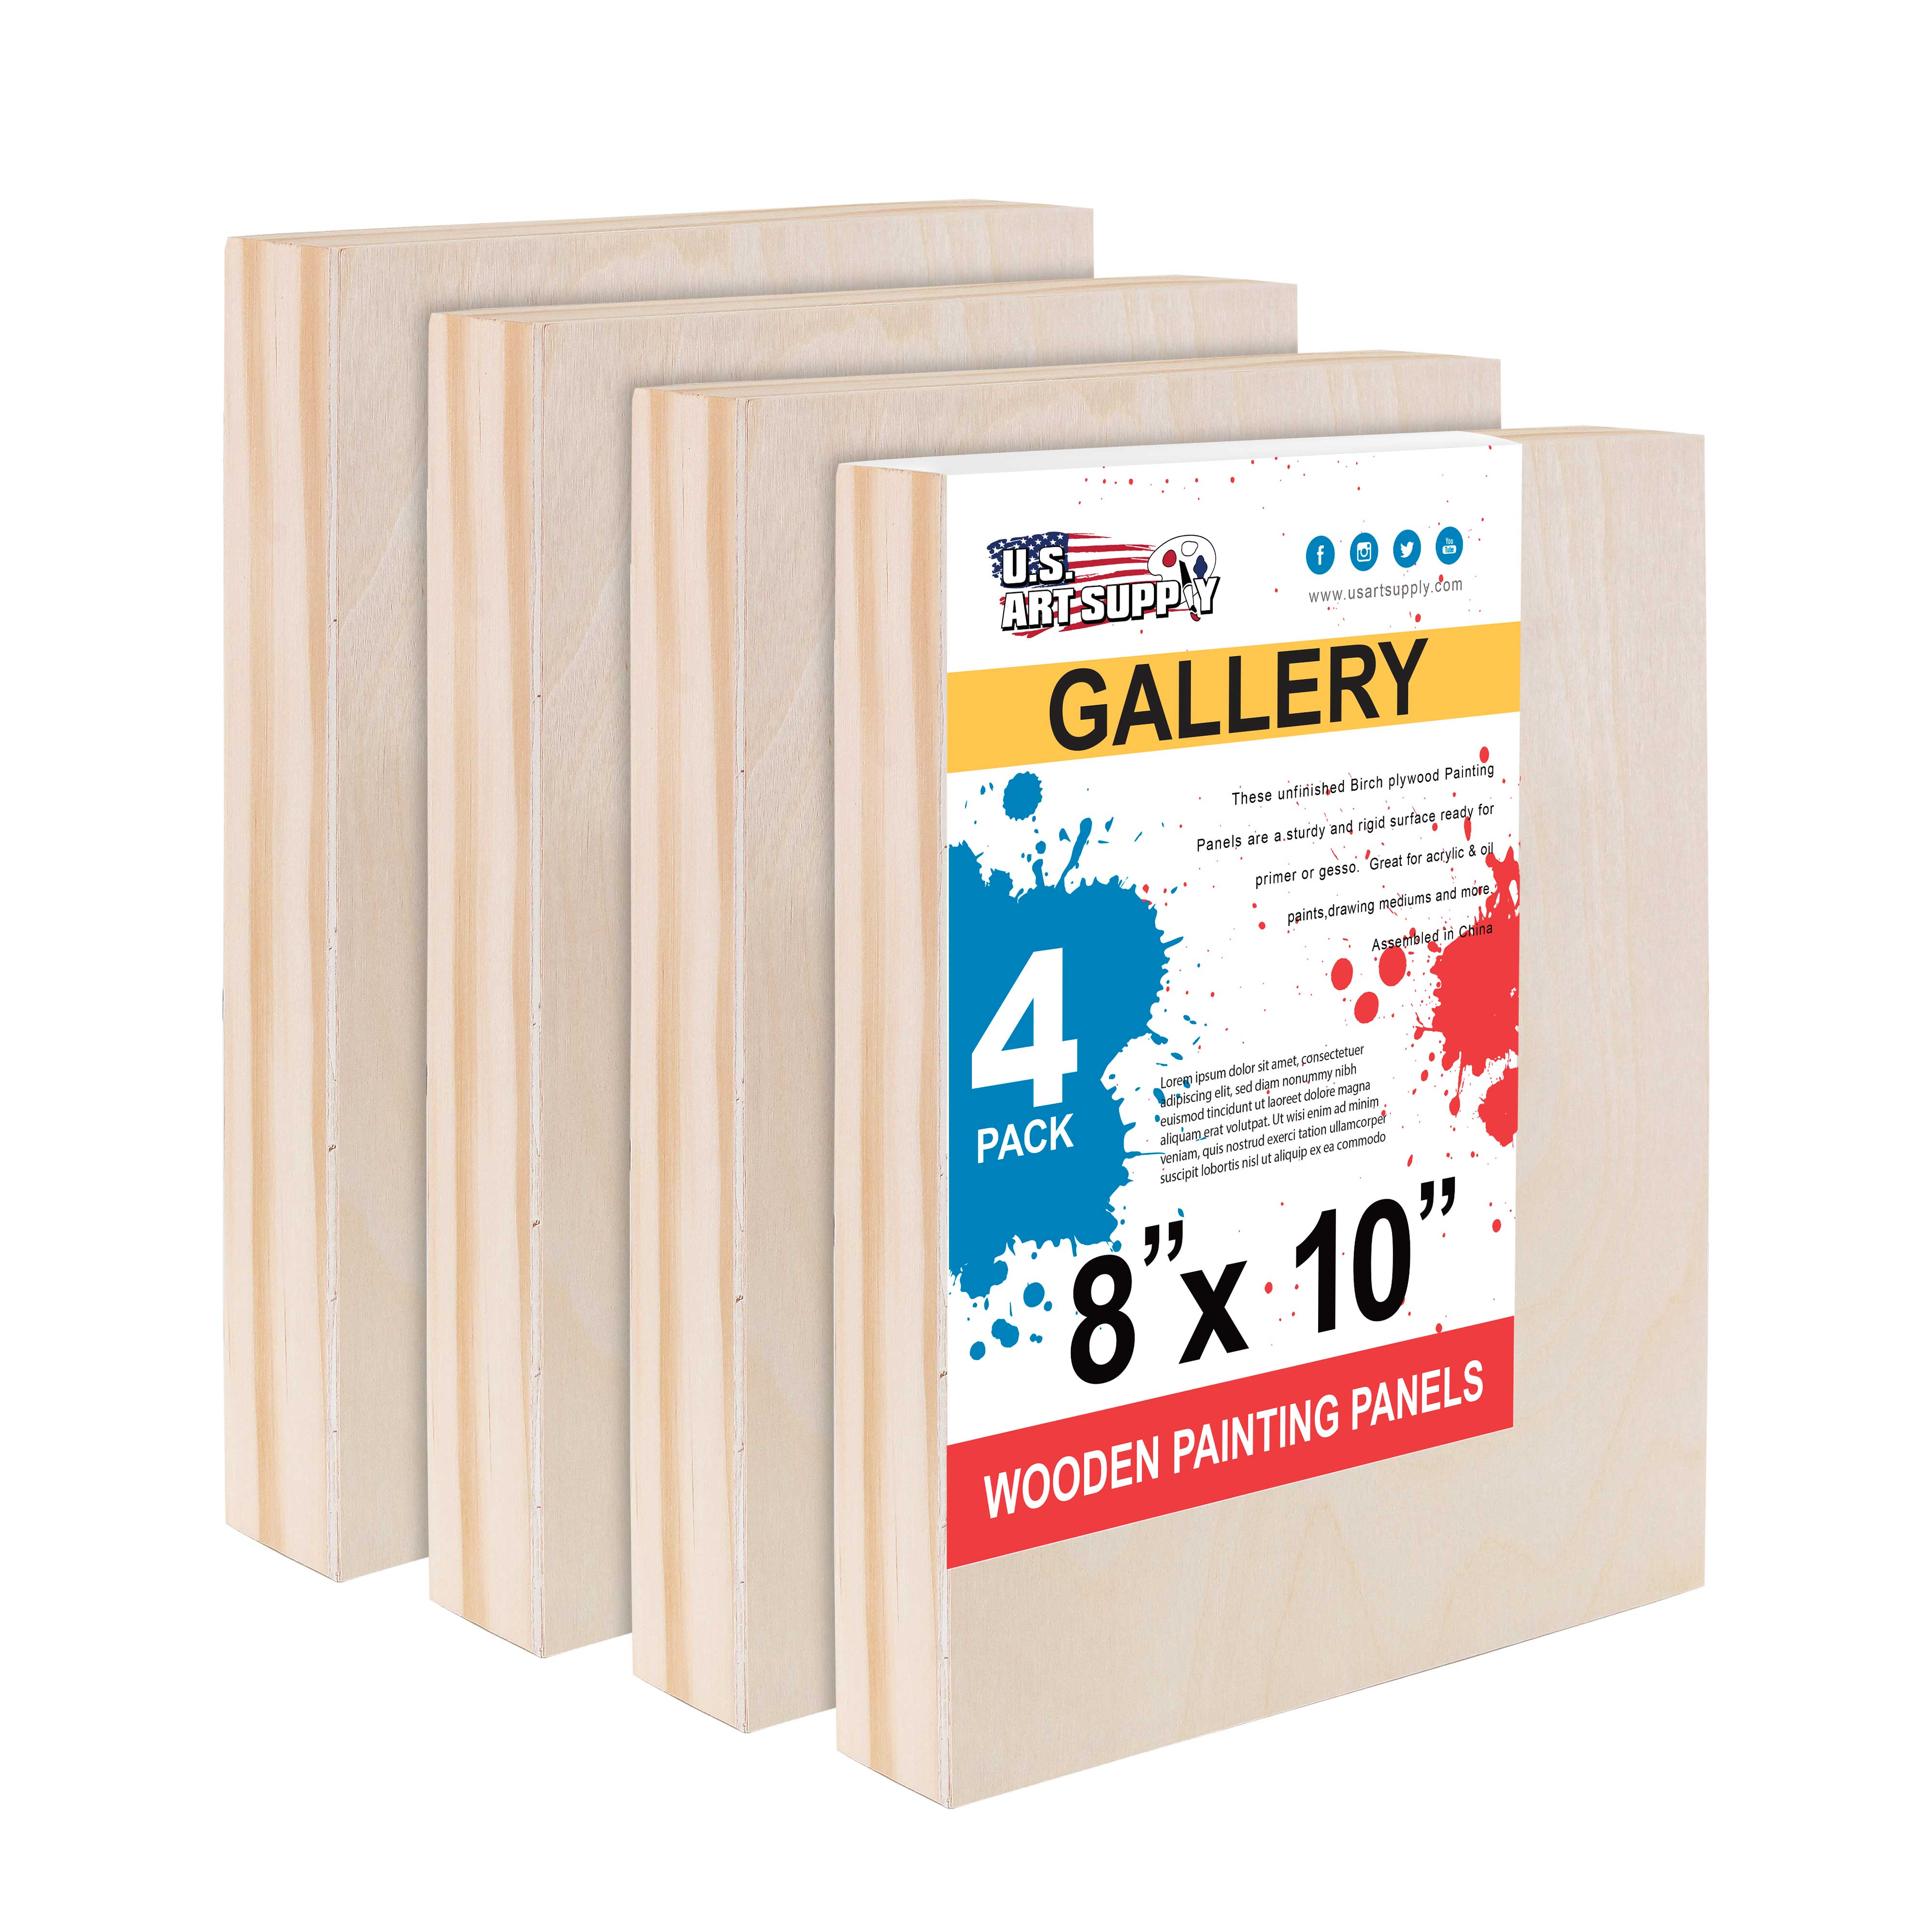 Size S Healifty 2Pcs Wooden Painting Board Unfinished Wood Canvas Cradled Panel Boards for Painting Drawing and Arts Crafts